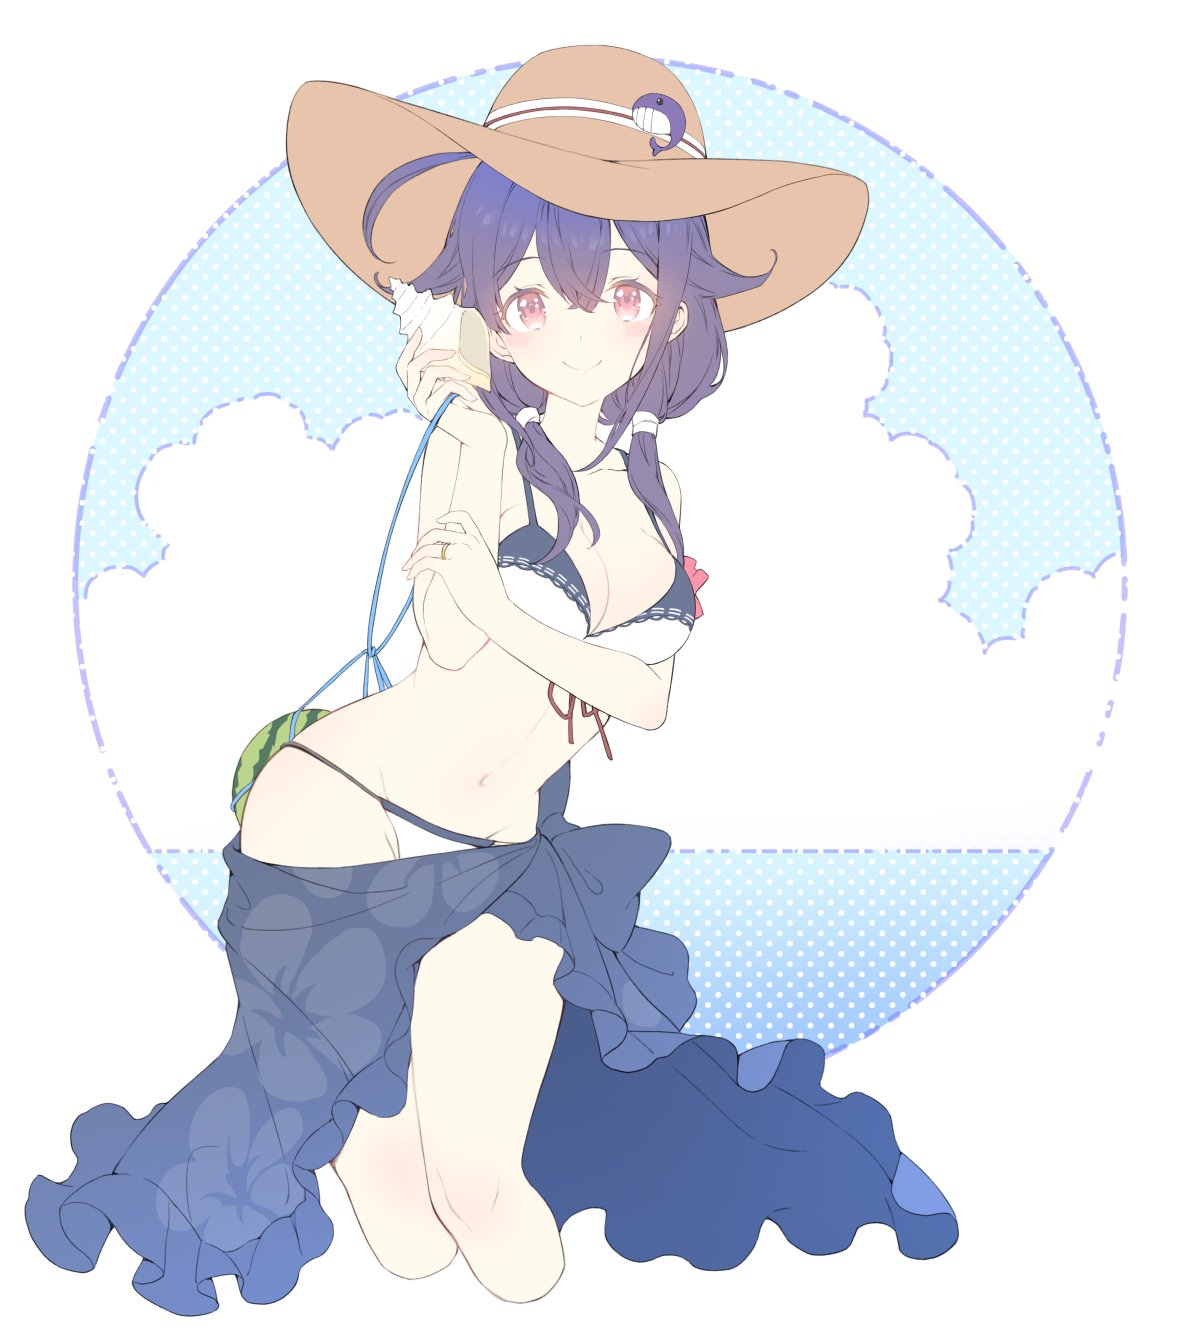 1girl ahoge bikini breasts cleavage cowboy_shot food fruit hat highres holding_shell kantai_collection large_breasts looking_at_viewer low_twintails purple_hair red_eyes seashell shell shiosoda smile solo straw_hat swimsuit taigei_(kantai_collection) twintails watermelon white_bikini